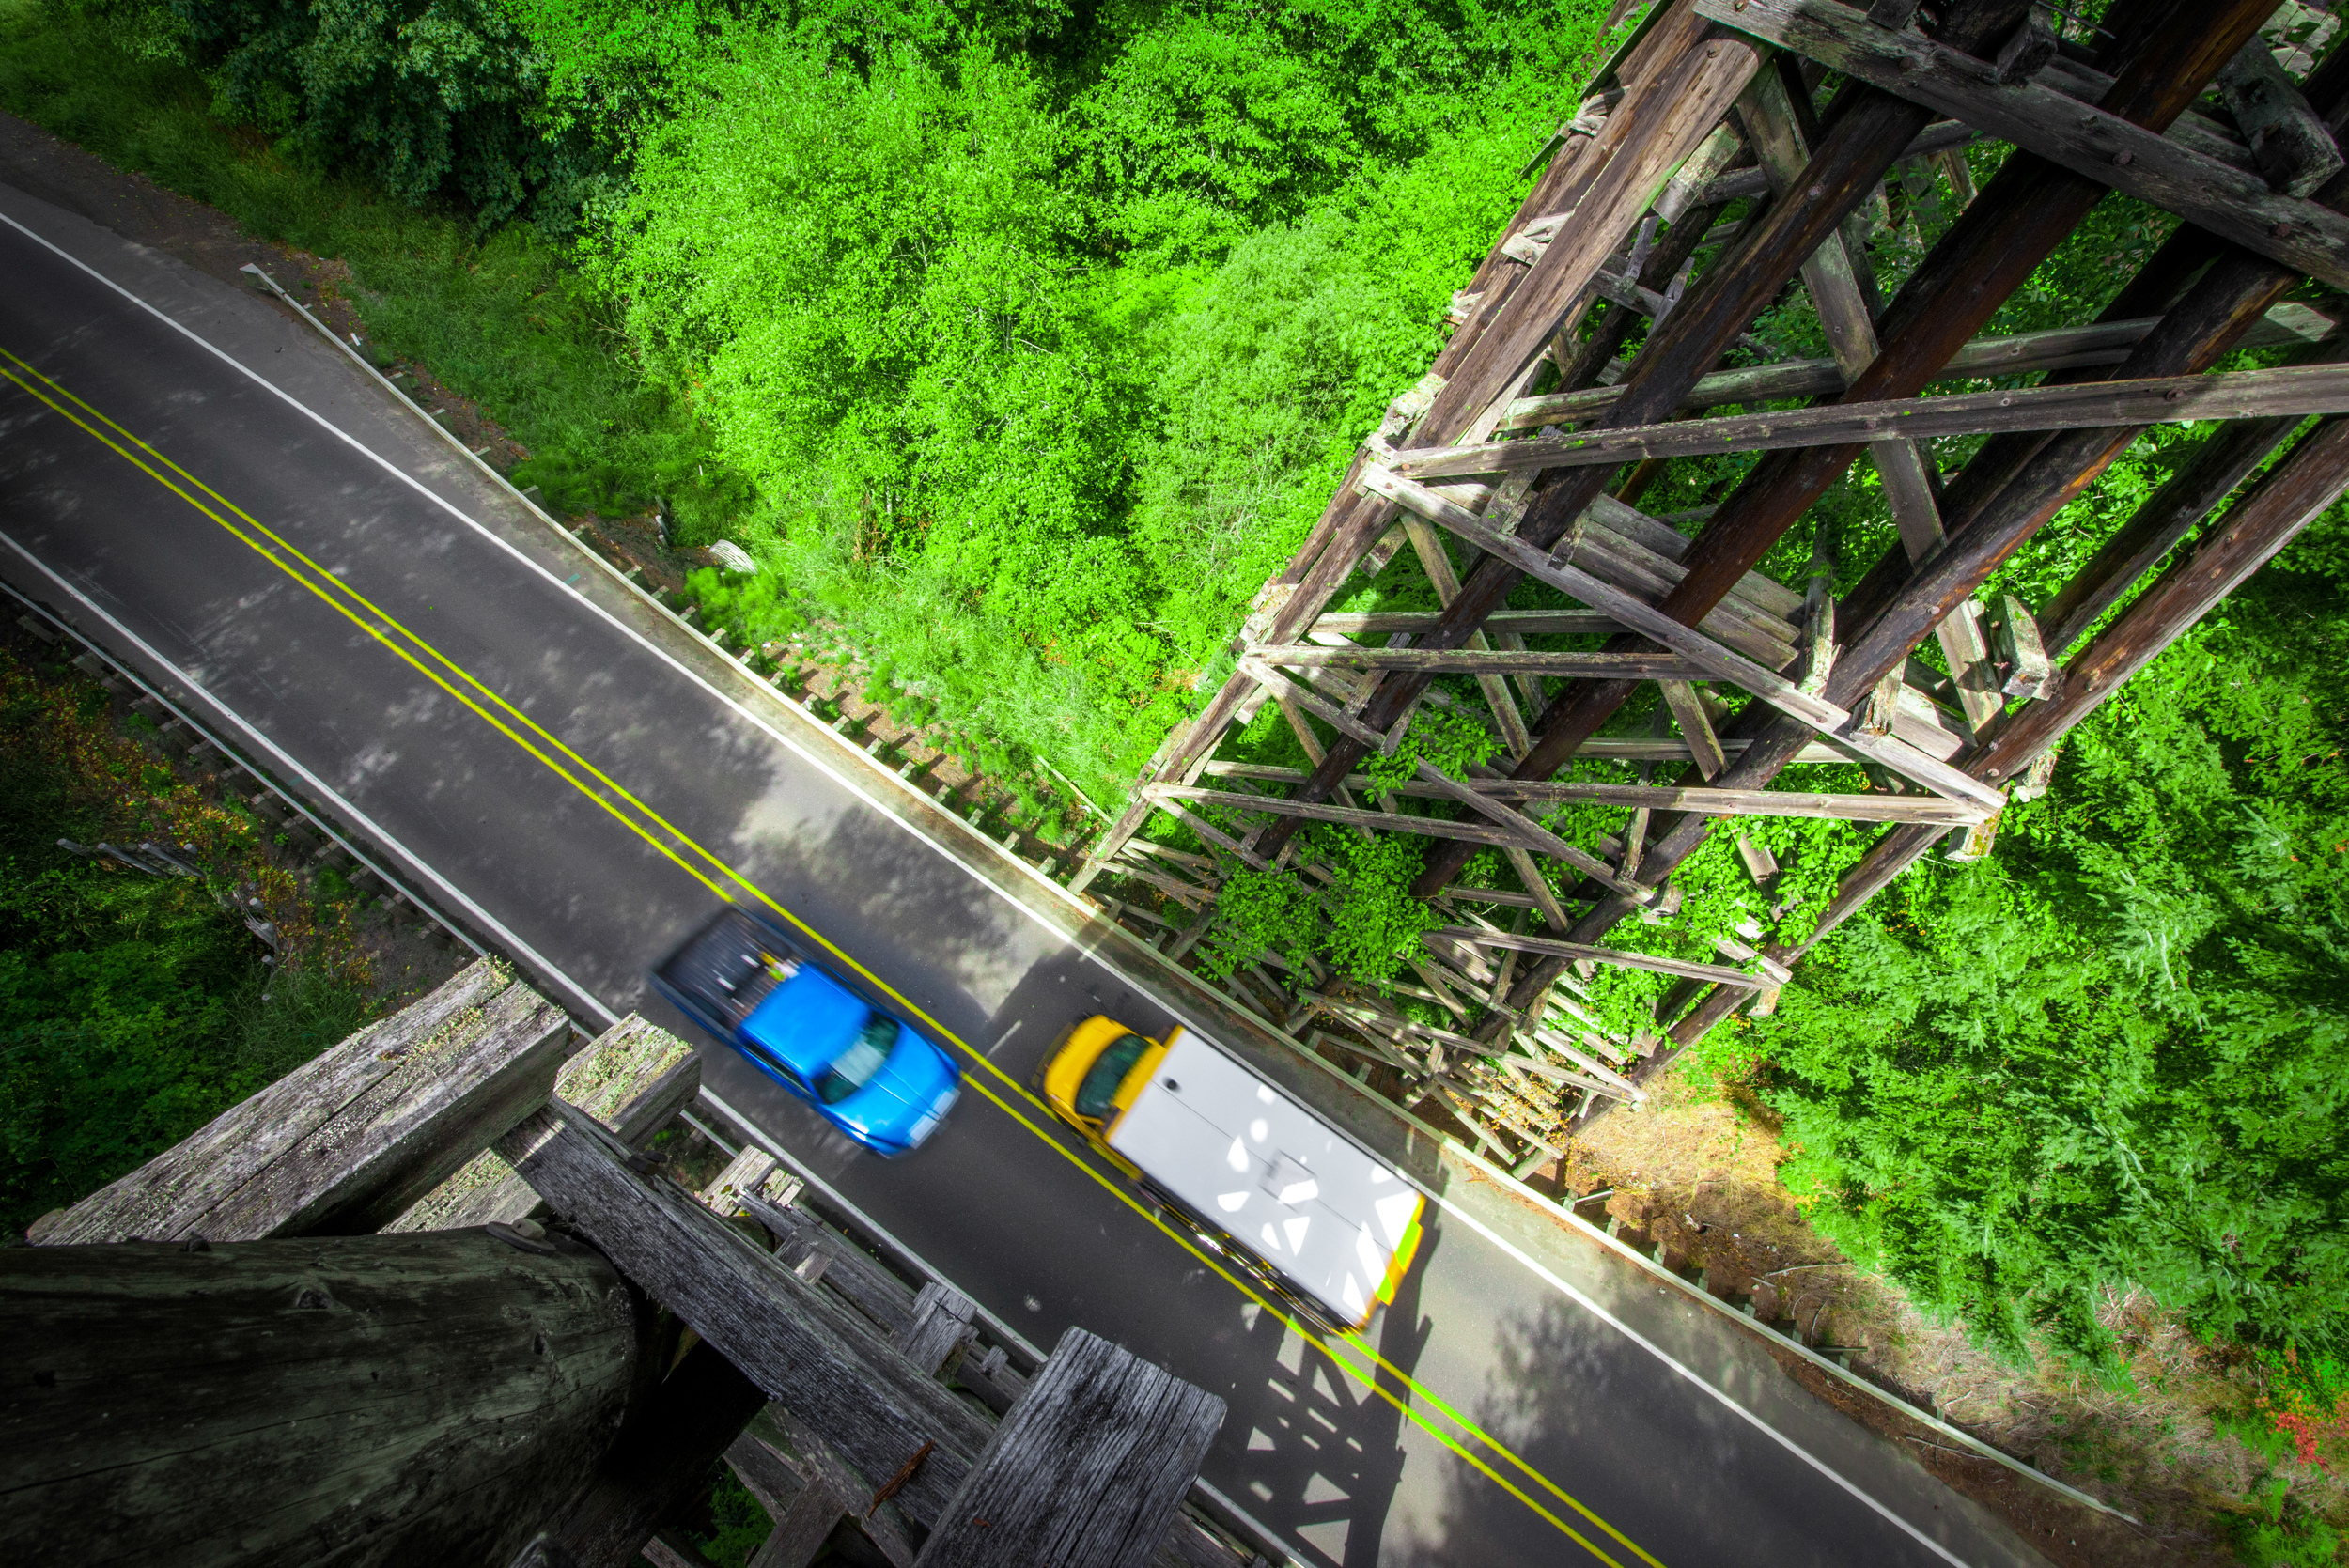 View of the cars from an abandoned rail bridge in Vernonia, OR